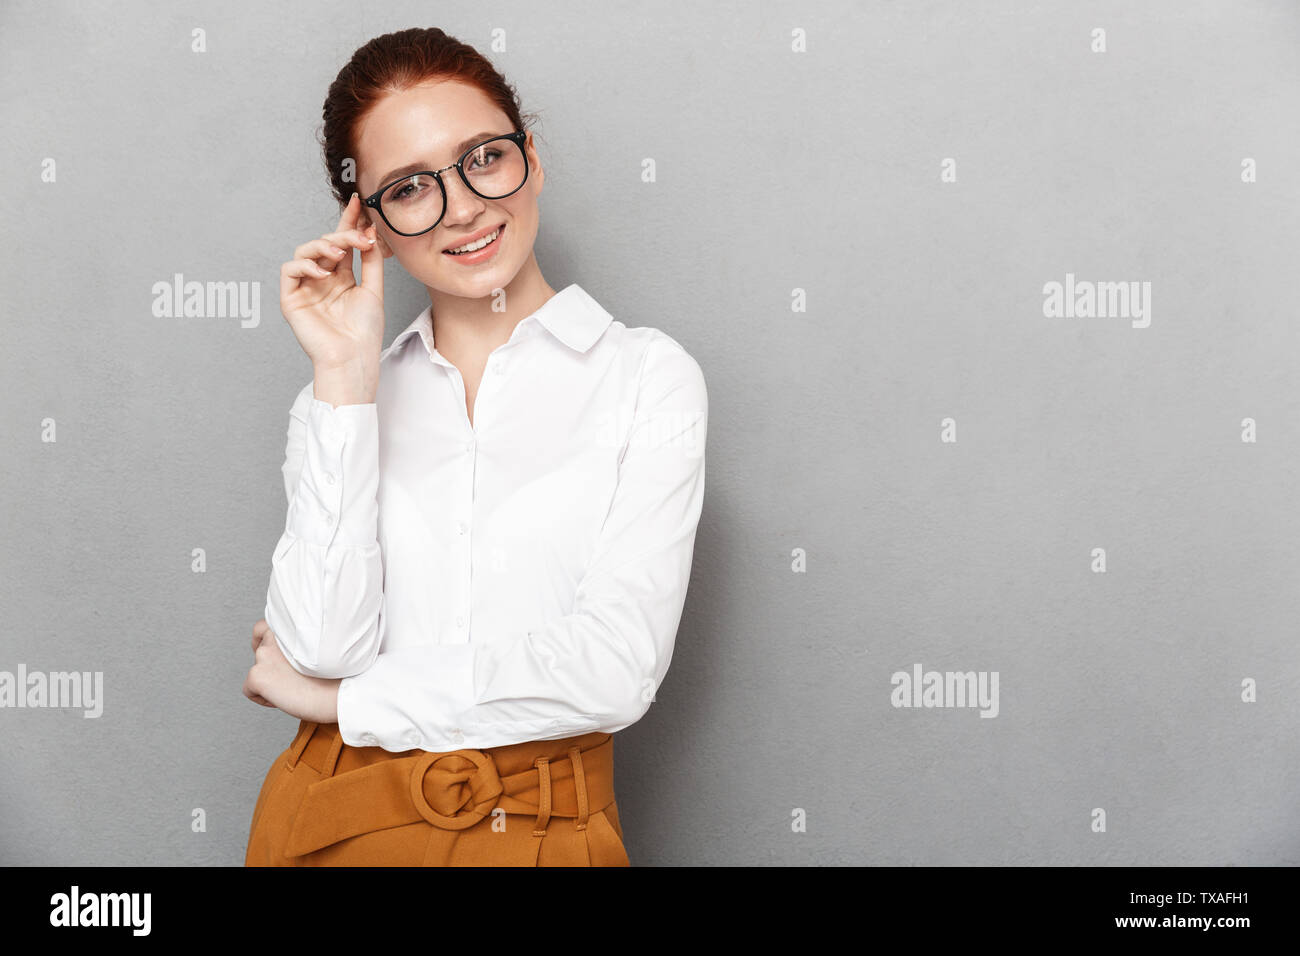 Portrait of happy redhead businesswoman 20s in formal wear holding eyeglasses and smiling at camera in office isolated over gray background - Stock Image